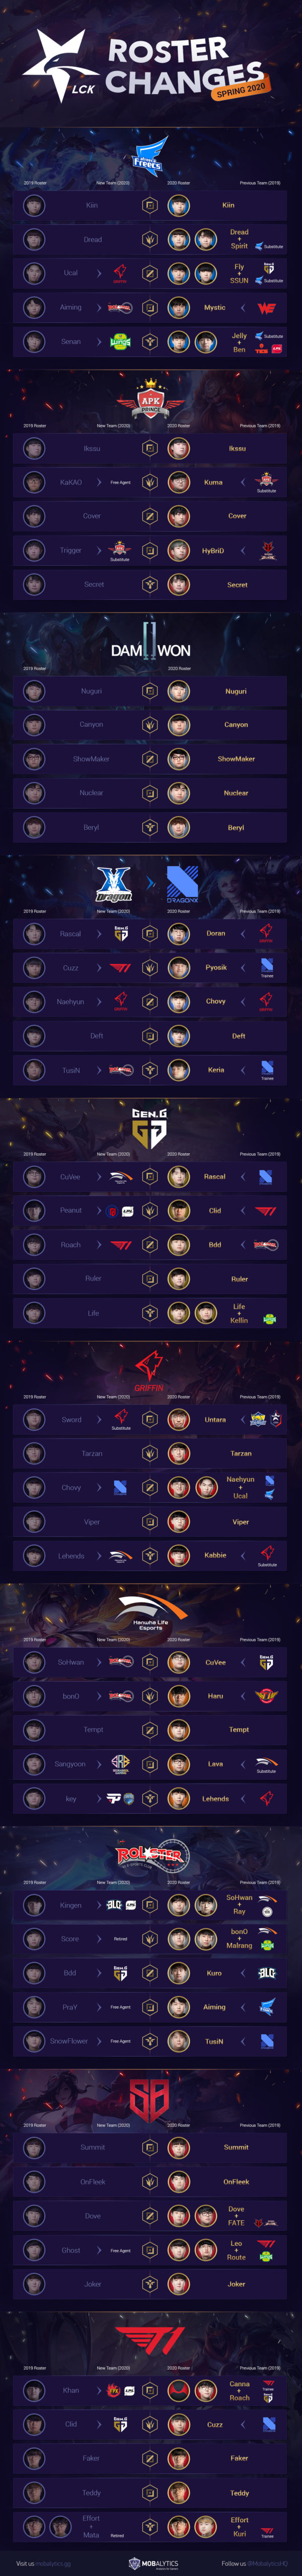 LCK Roster Changes Infographic (Spring 2020 Teams)